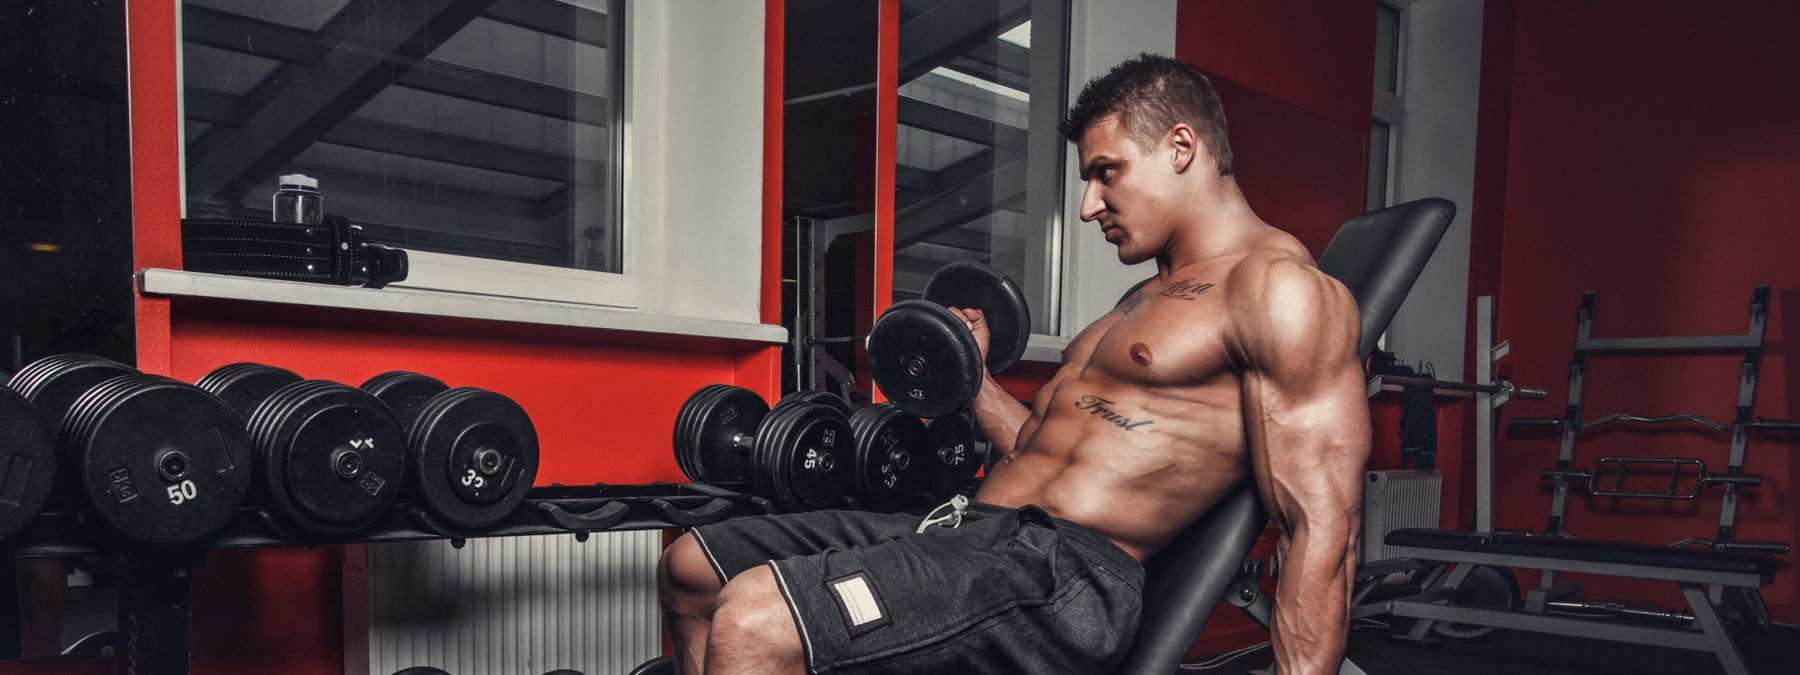 Best Way to Build Muscle? Here Are 3 Rock Solid Strategies